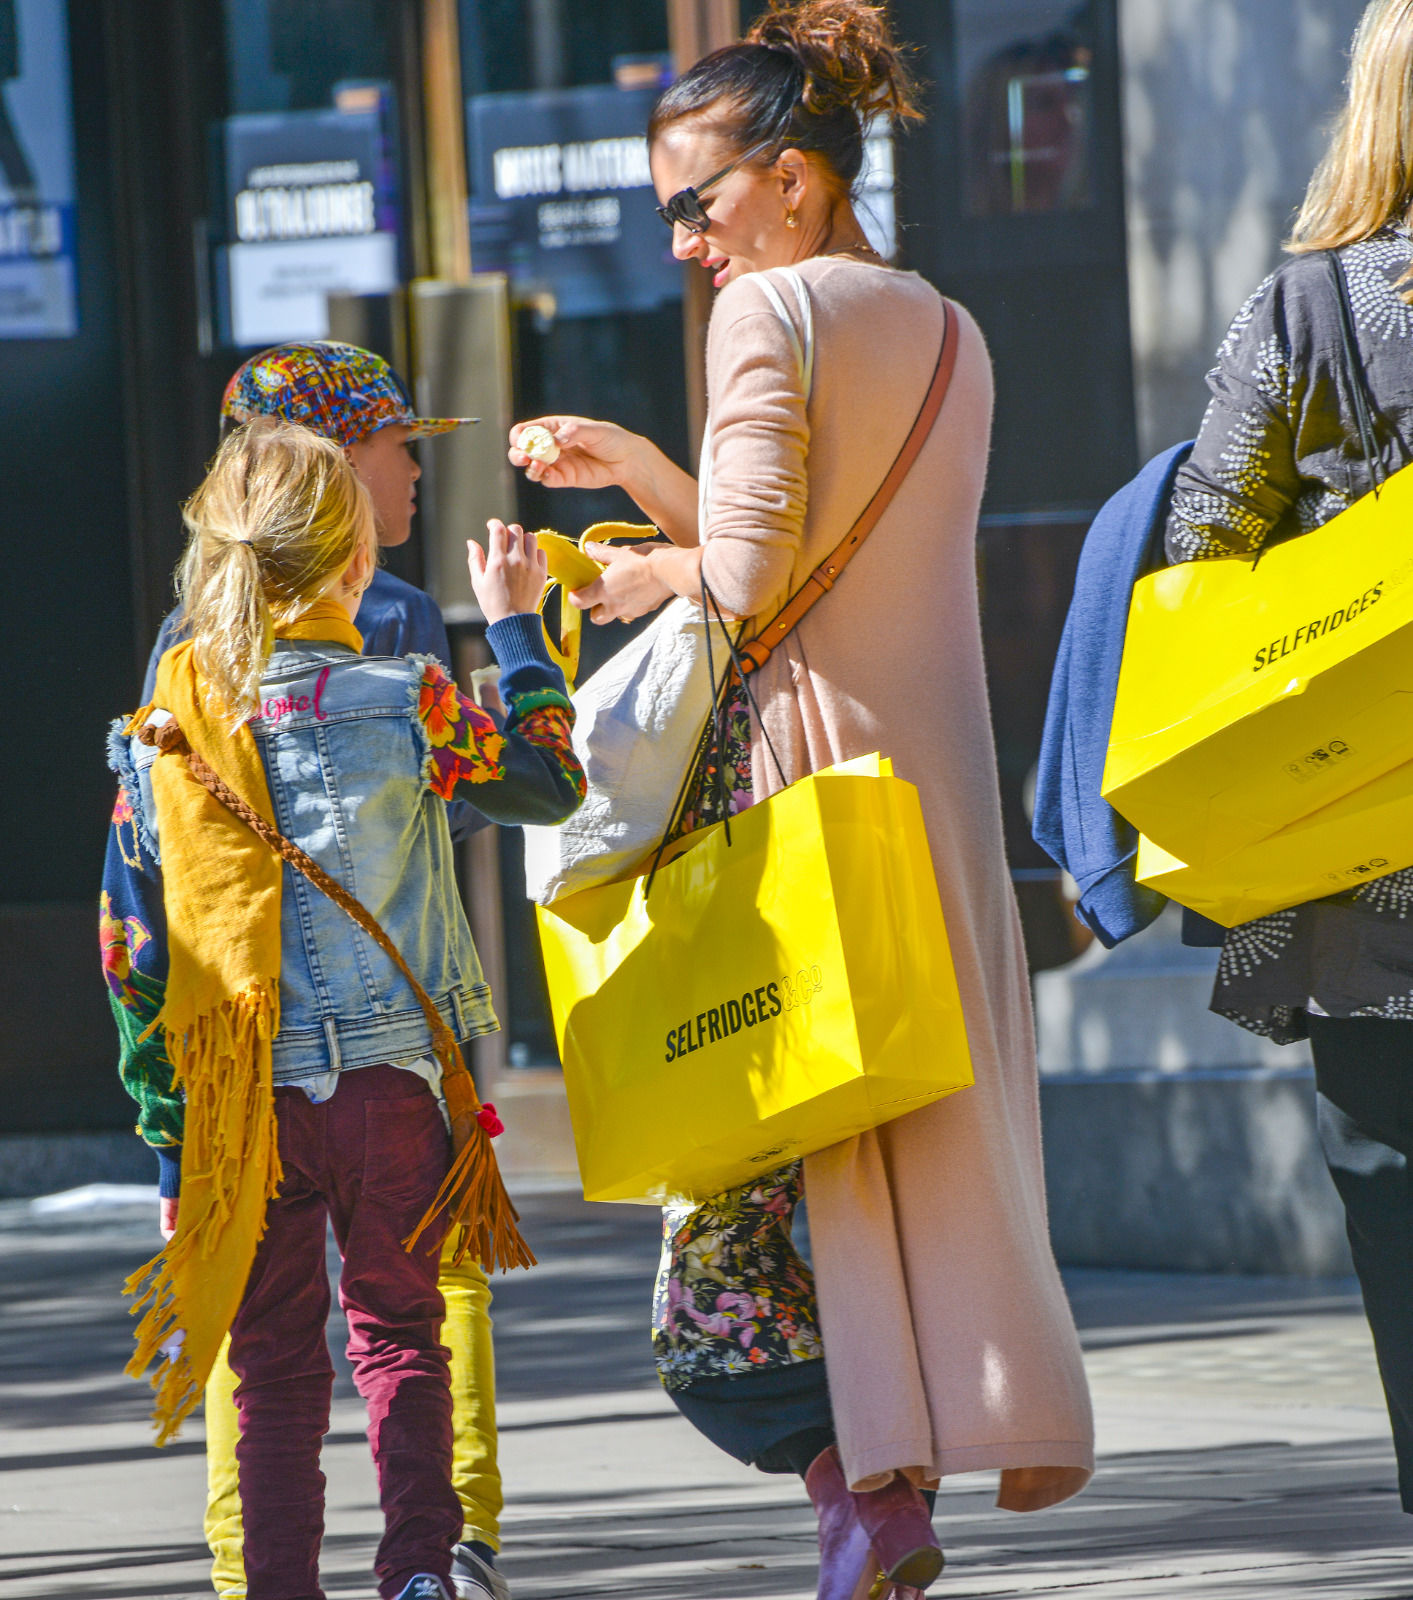 local london area photo luxury shopping